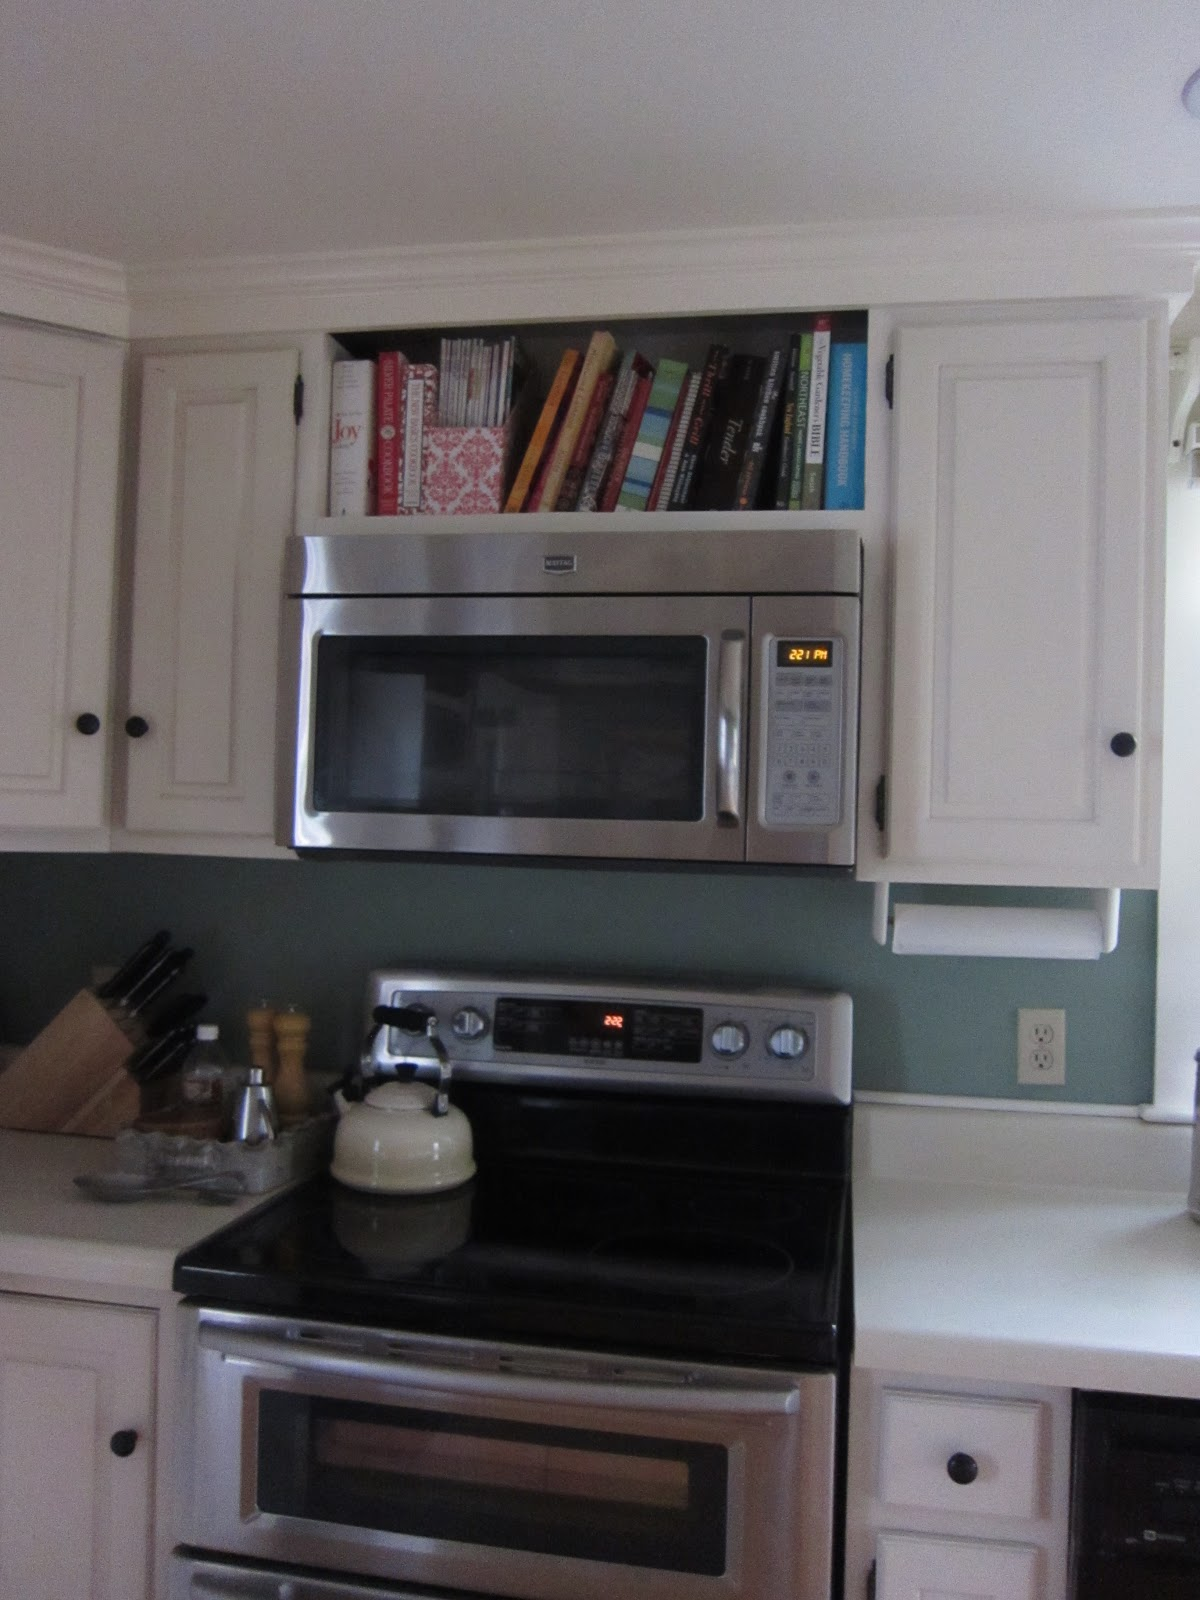 Mounting Microwave Above Stove Without Cabinet  BestMicrowave